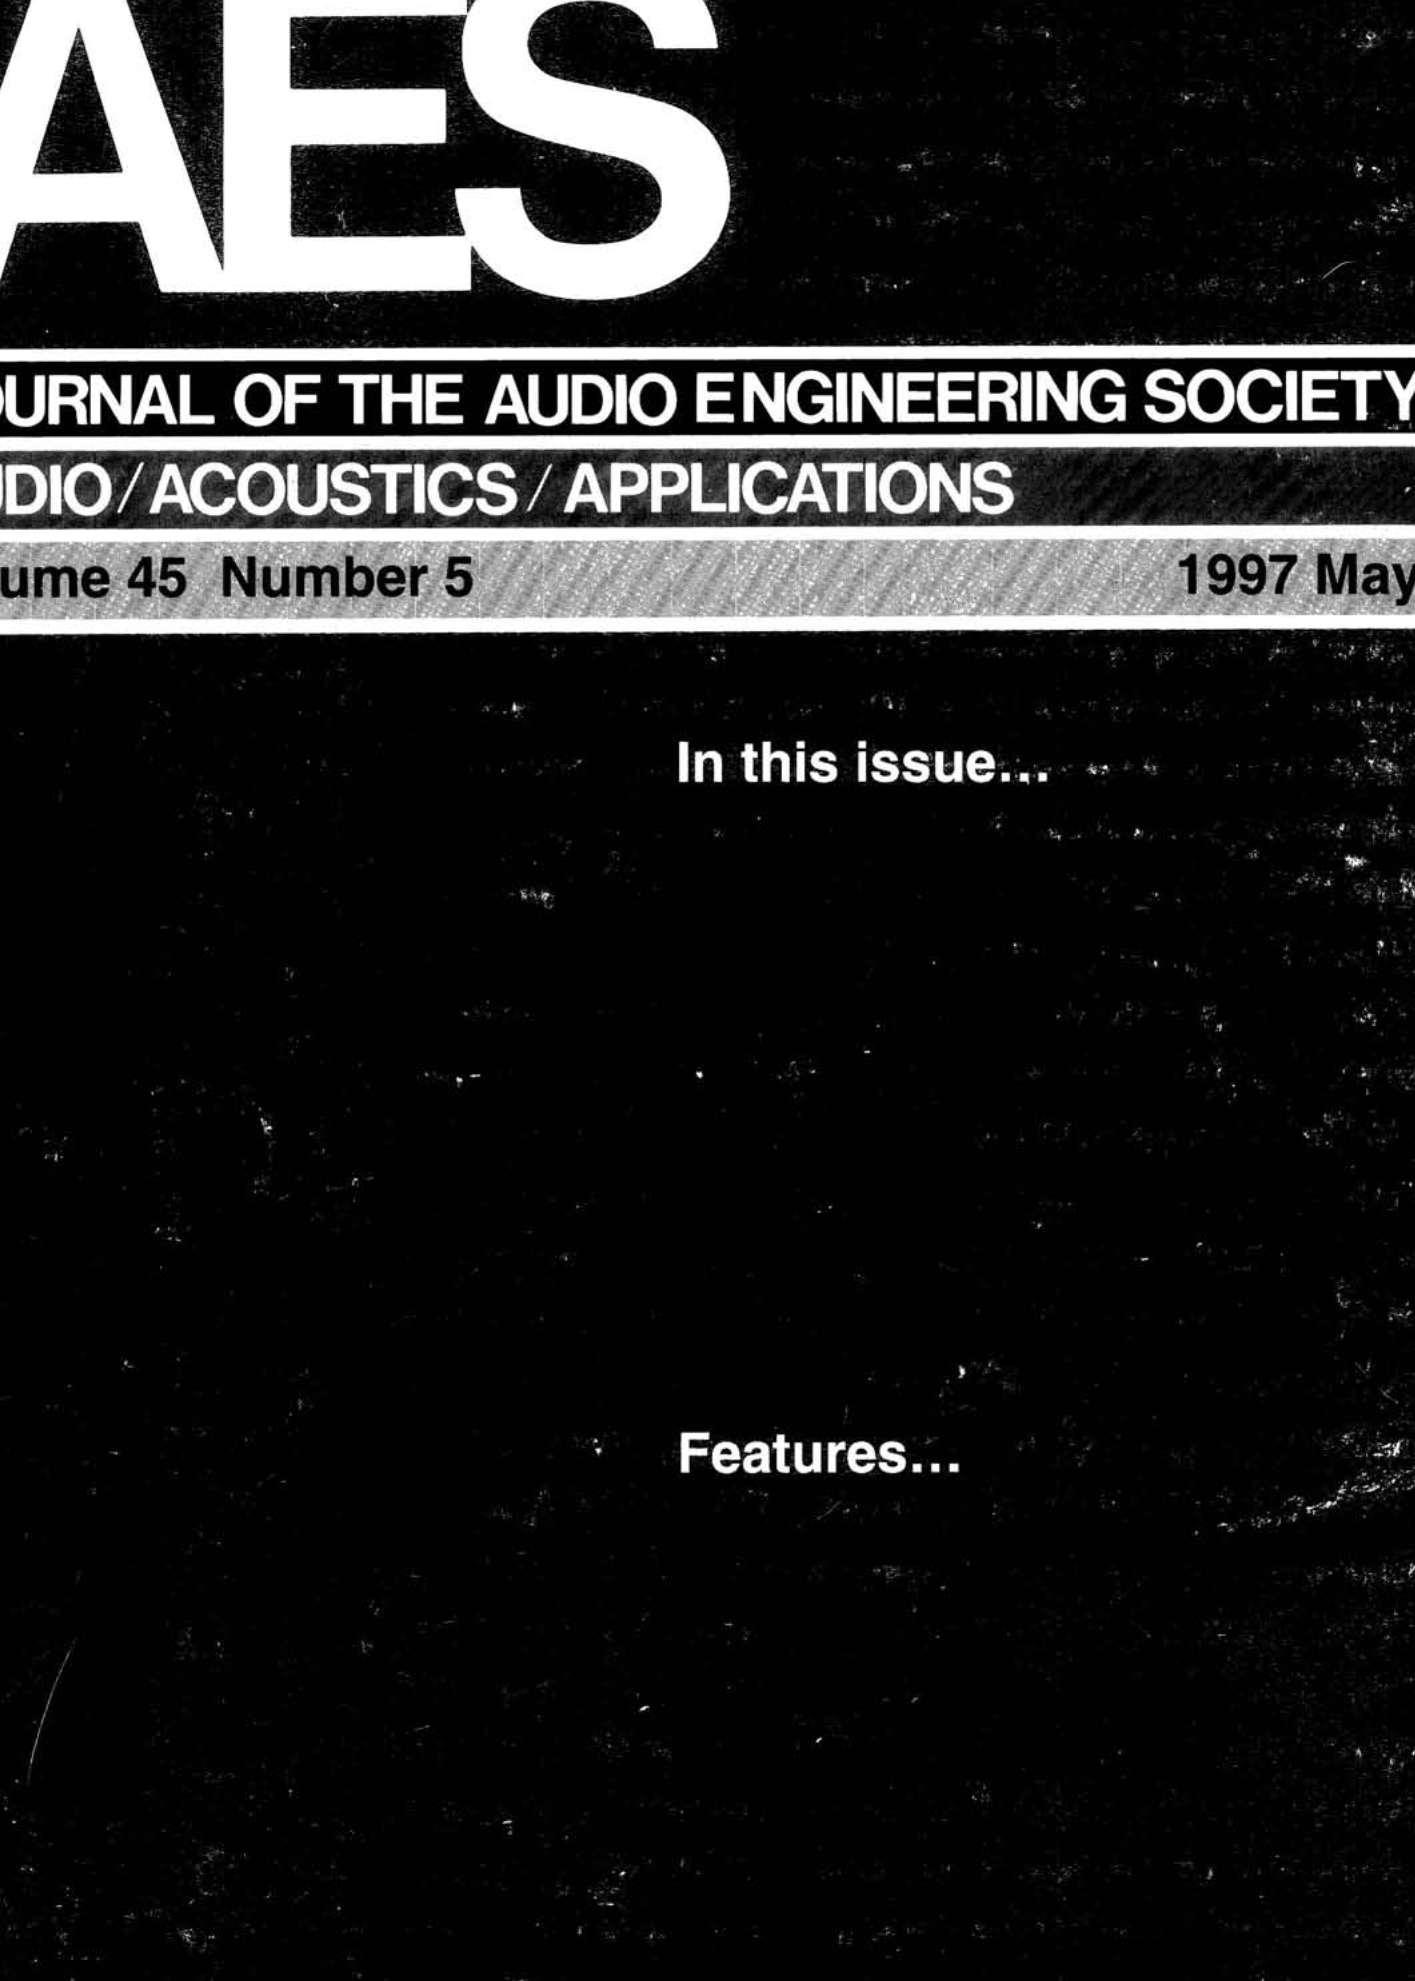 aes e library complete journal volume 45 issue 5